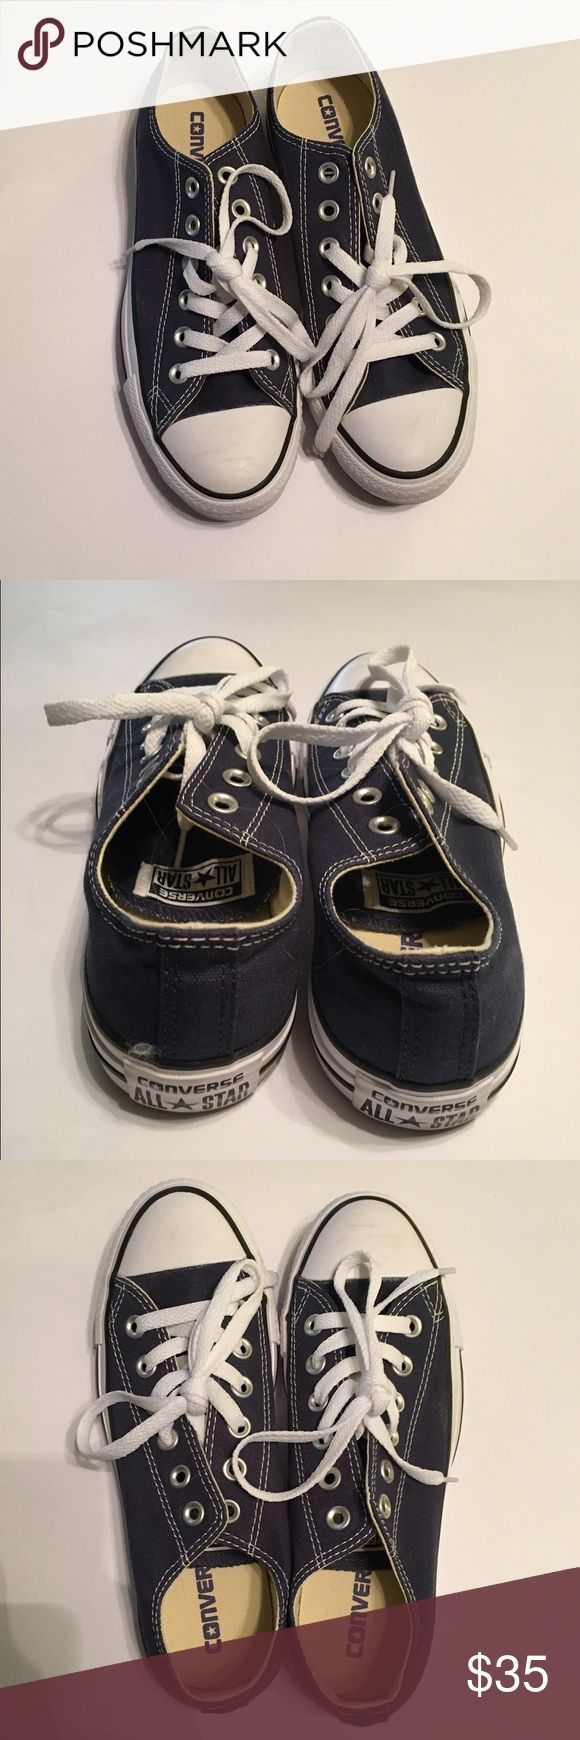 Ladies Navy Blue Converse Size: 7 US - worn once ✨ Ladies Navy Blue Converse Size: 7 US - worn once - EXCELLENT CONDITION- as seen in photos 😊☀️😊☀️😊 ••Note: this is a LADIES/Women's size 7 purchased from Nordstroms as Women's size 7•• Converse Shoes Sneakers